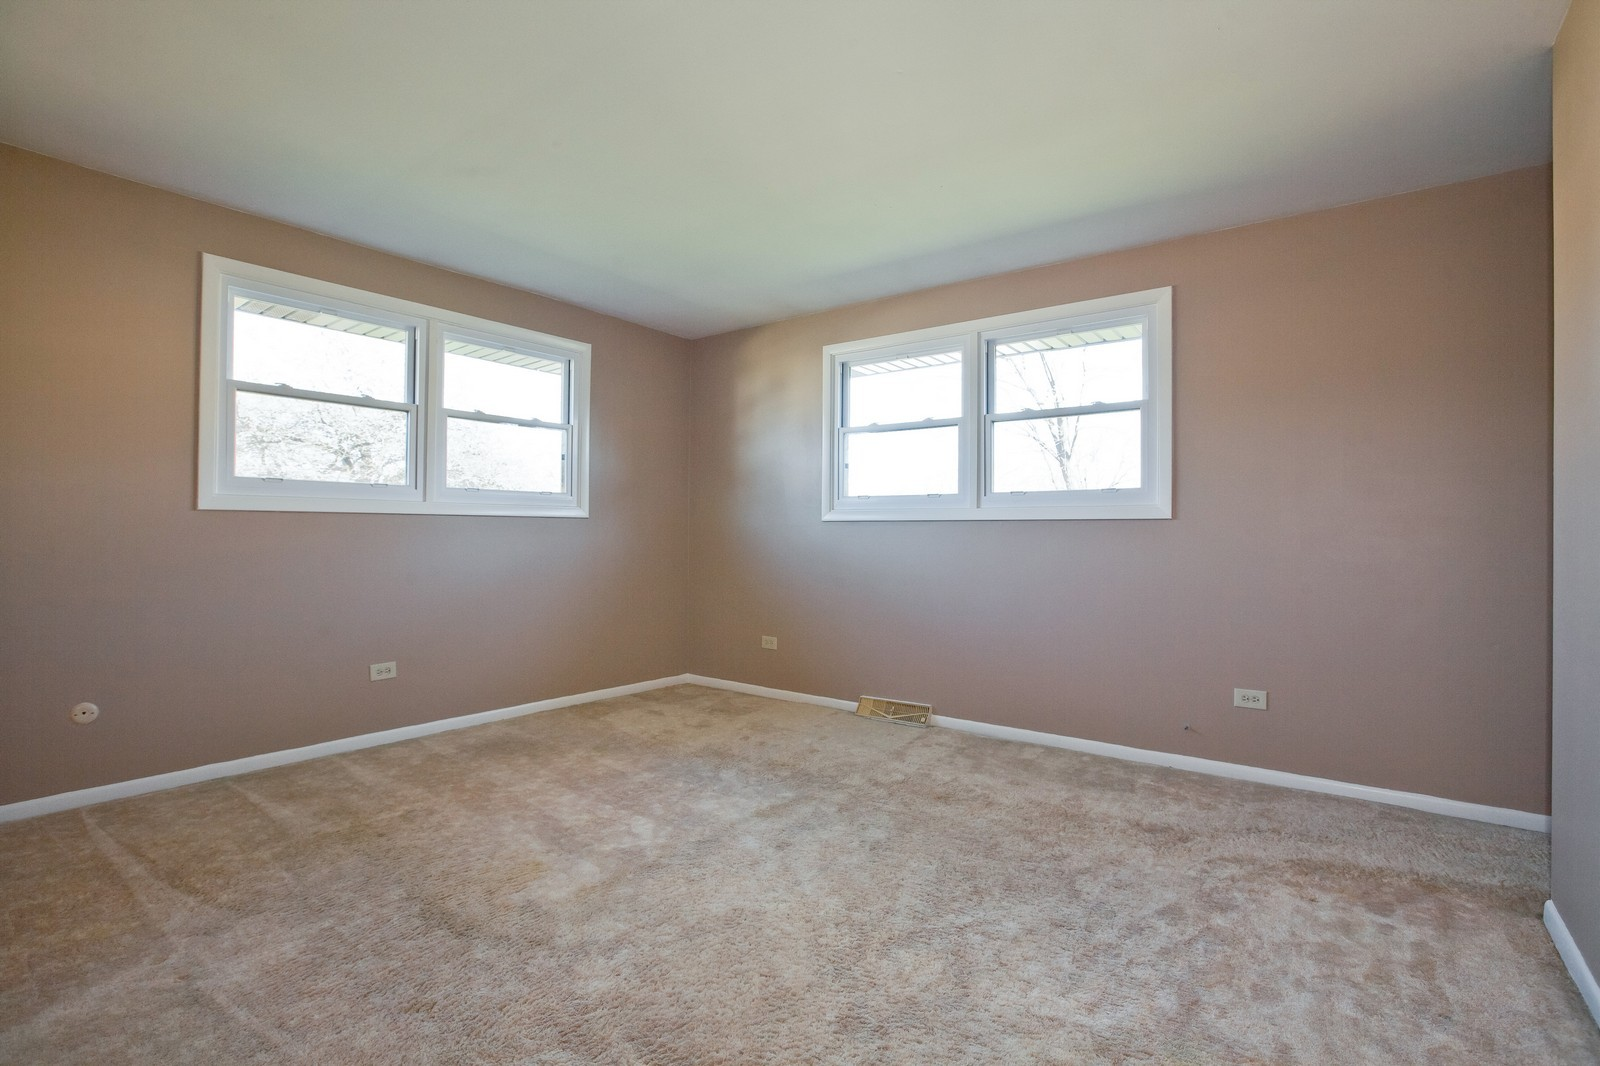 Real Estate Photography - 1330 68th Place, Downers Grove, IL, 60516 - Master Bedroom